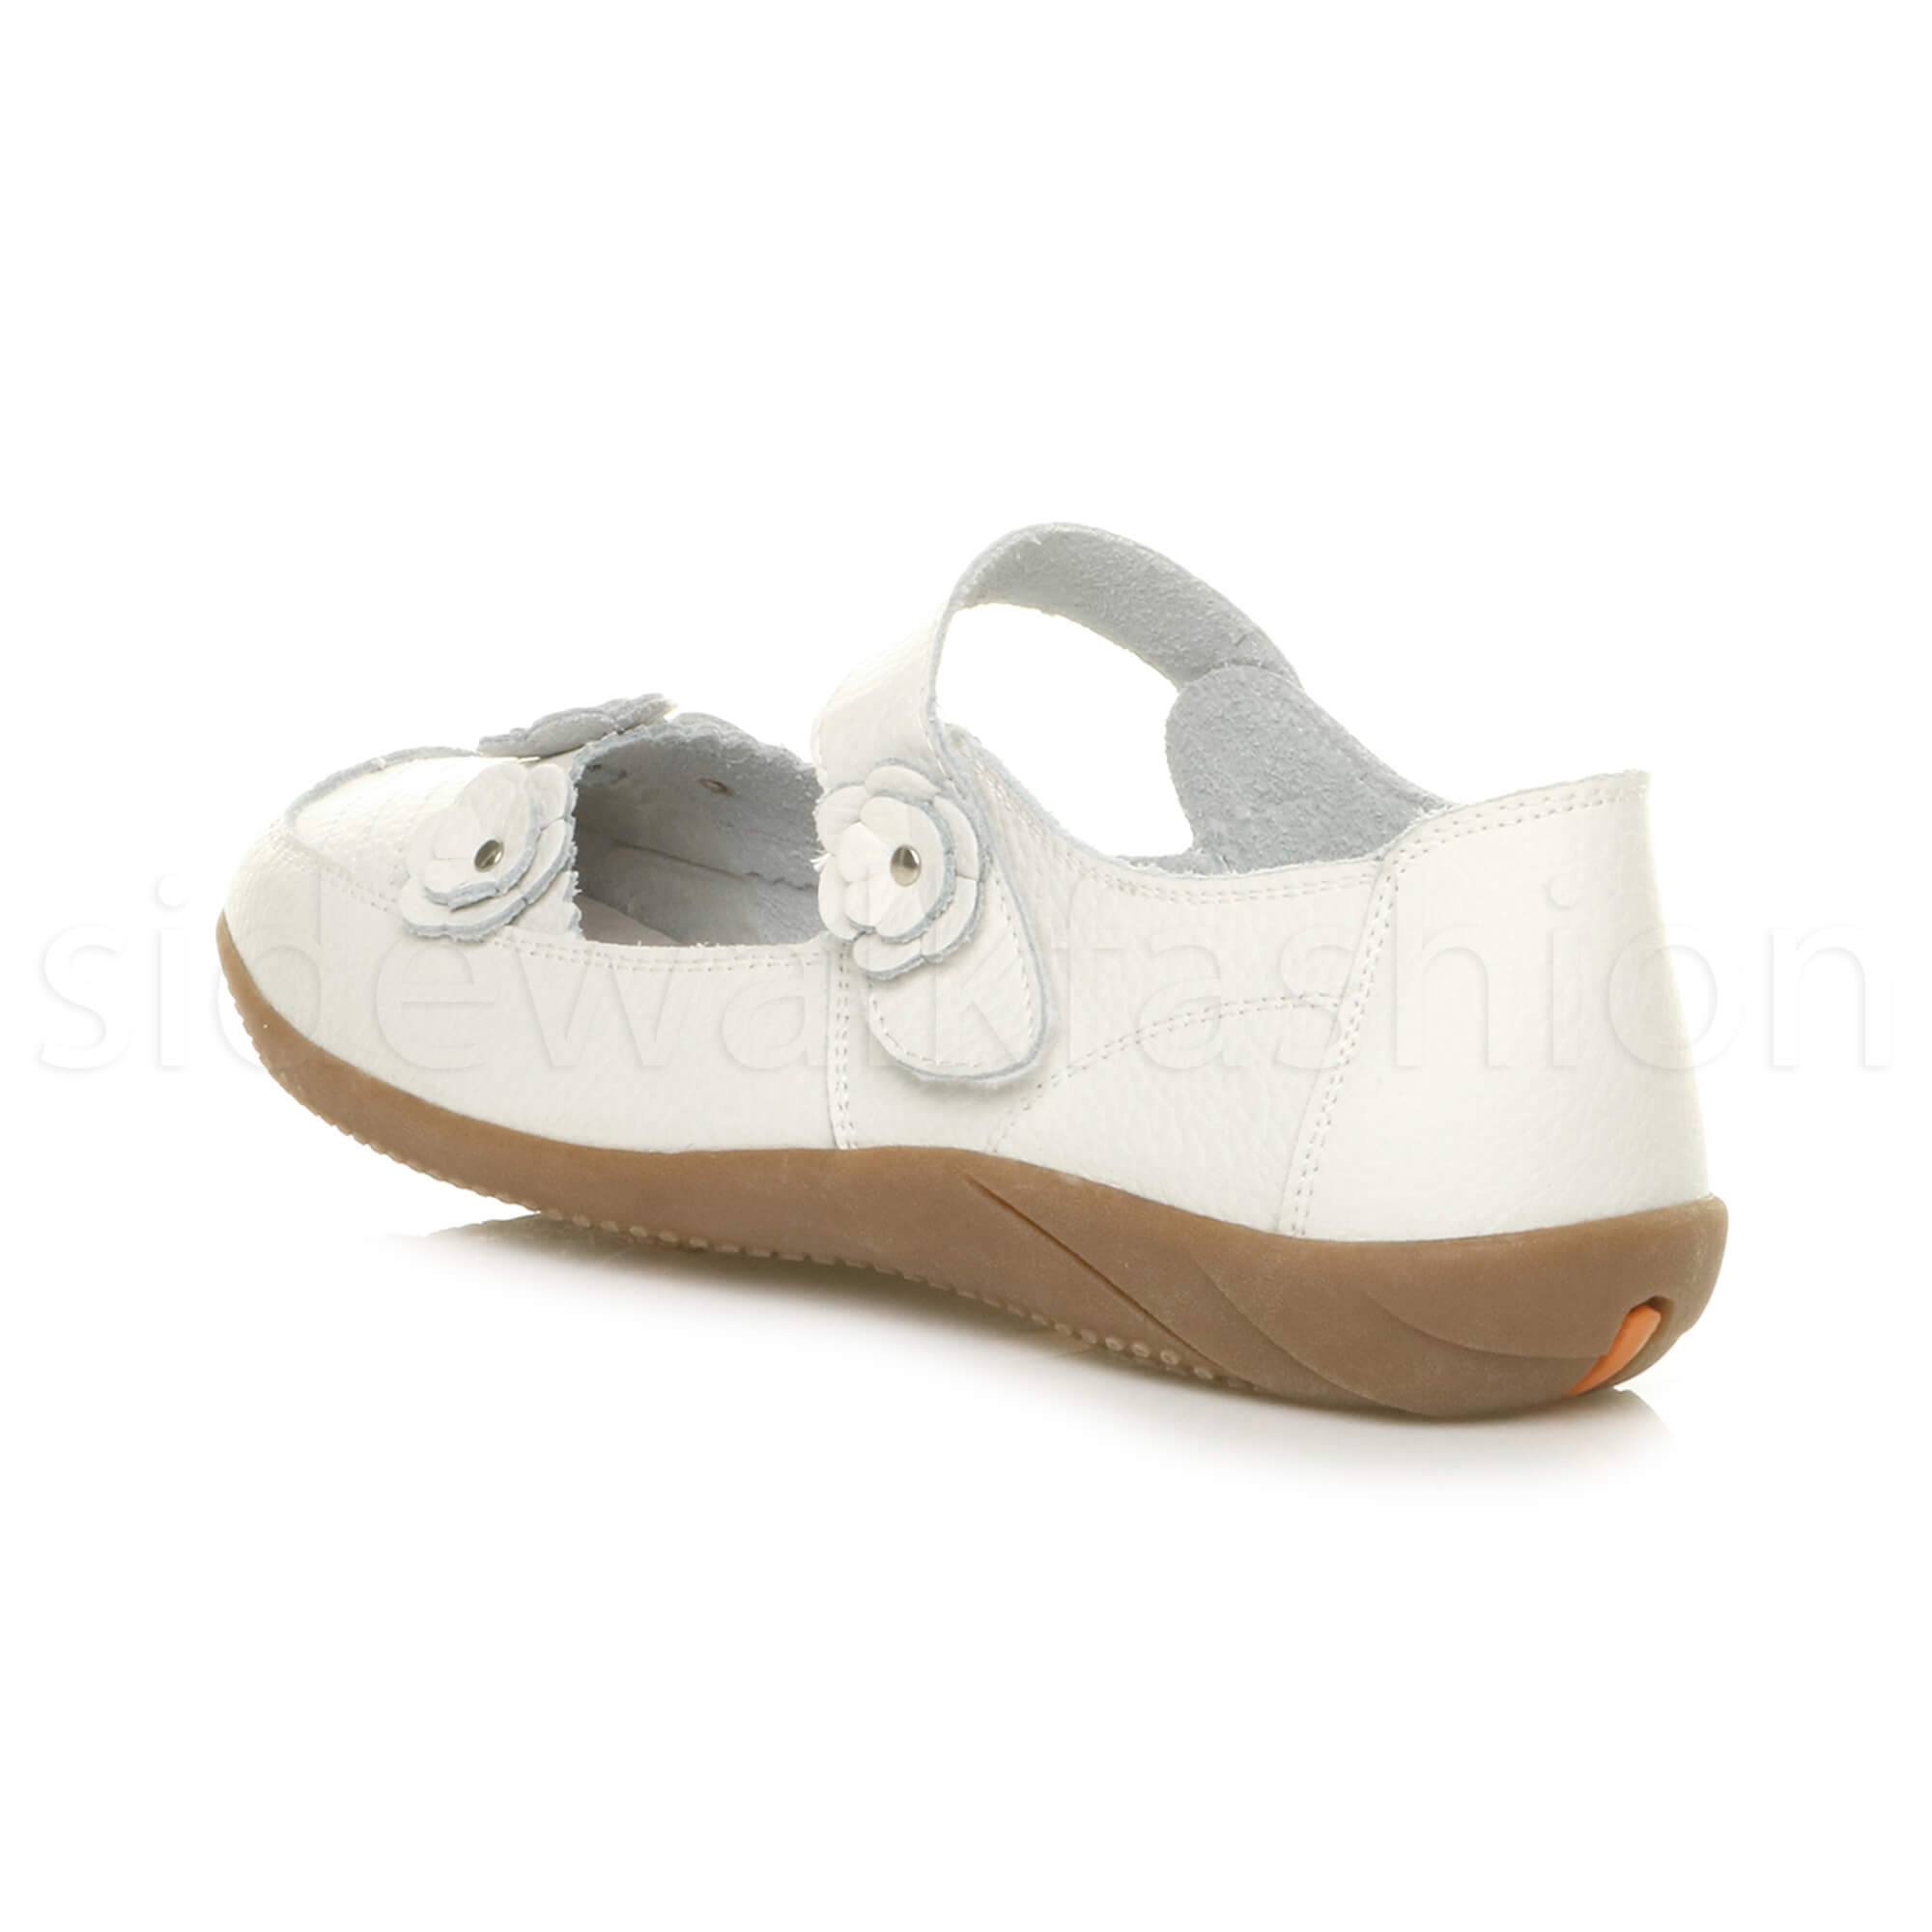 Womens-ladies-leather-comfort-walking-casual-sandals-mary-jane-strap-shoes-size thumbnail 55